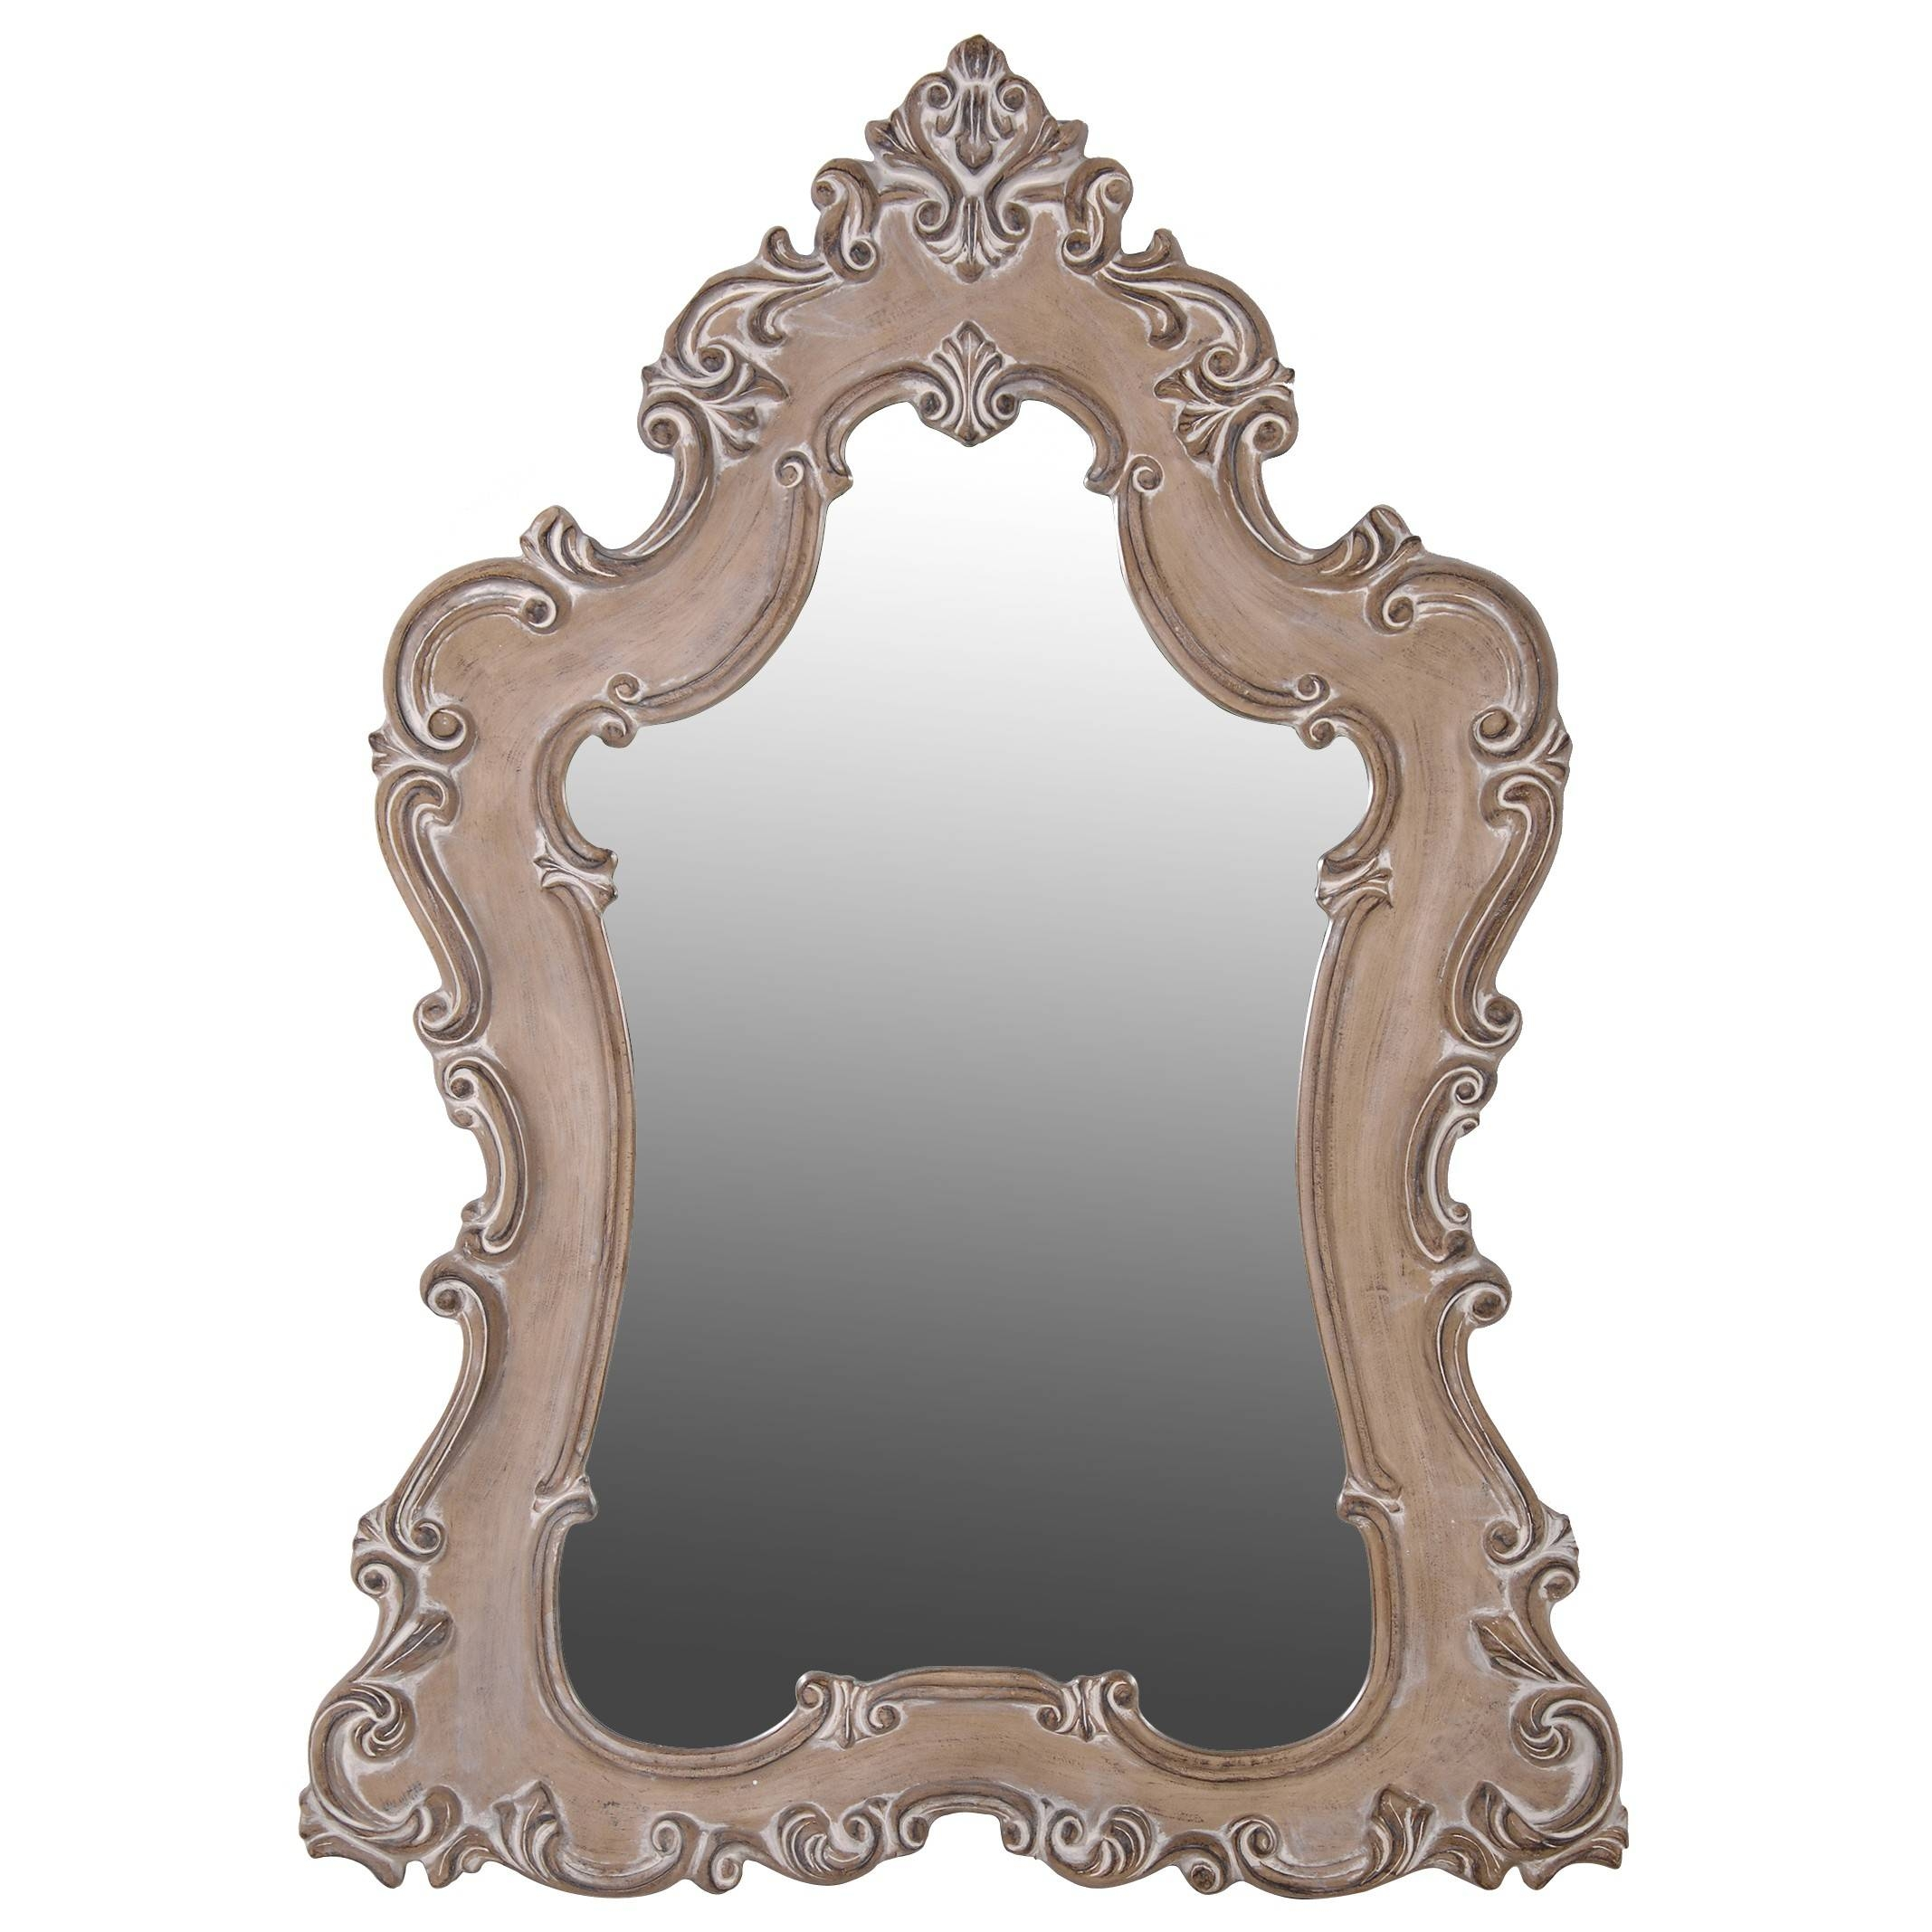 Interior & Decoration: Wall Mirrors For Interior Designornate Inside Ornate Wall Mirrors (View 15 of 25)